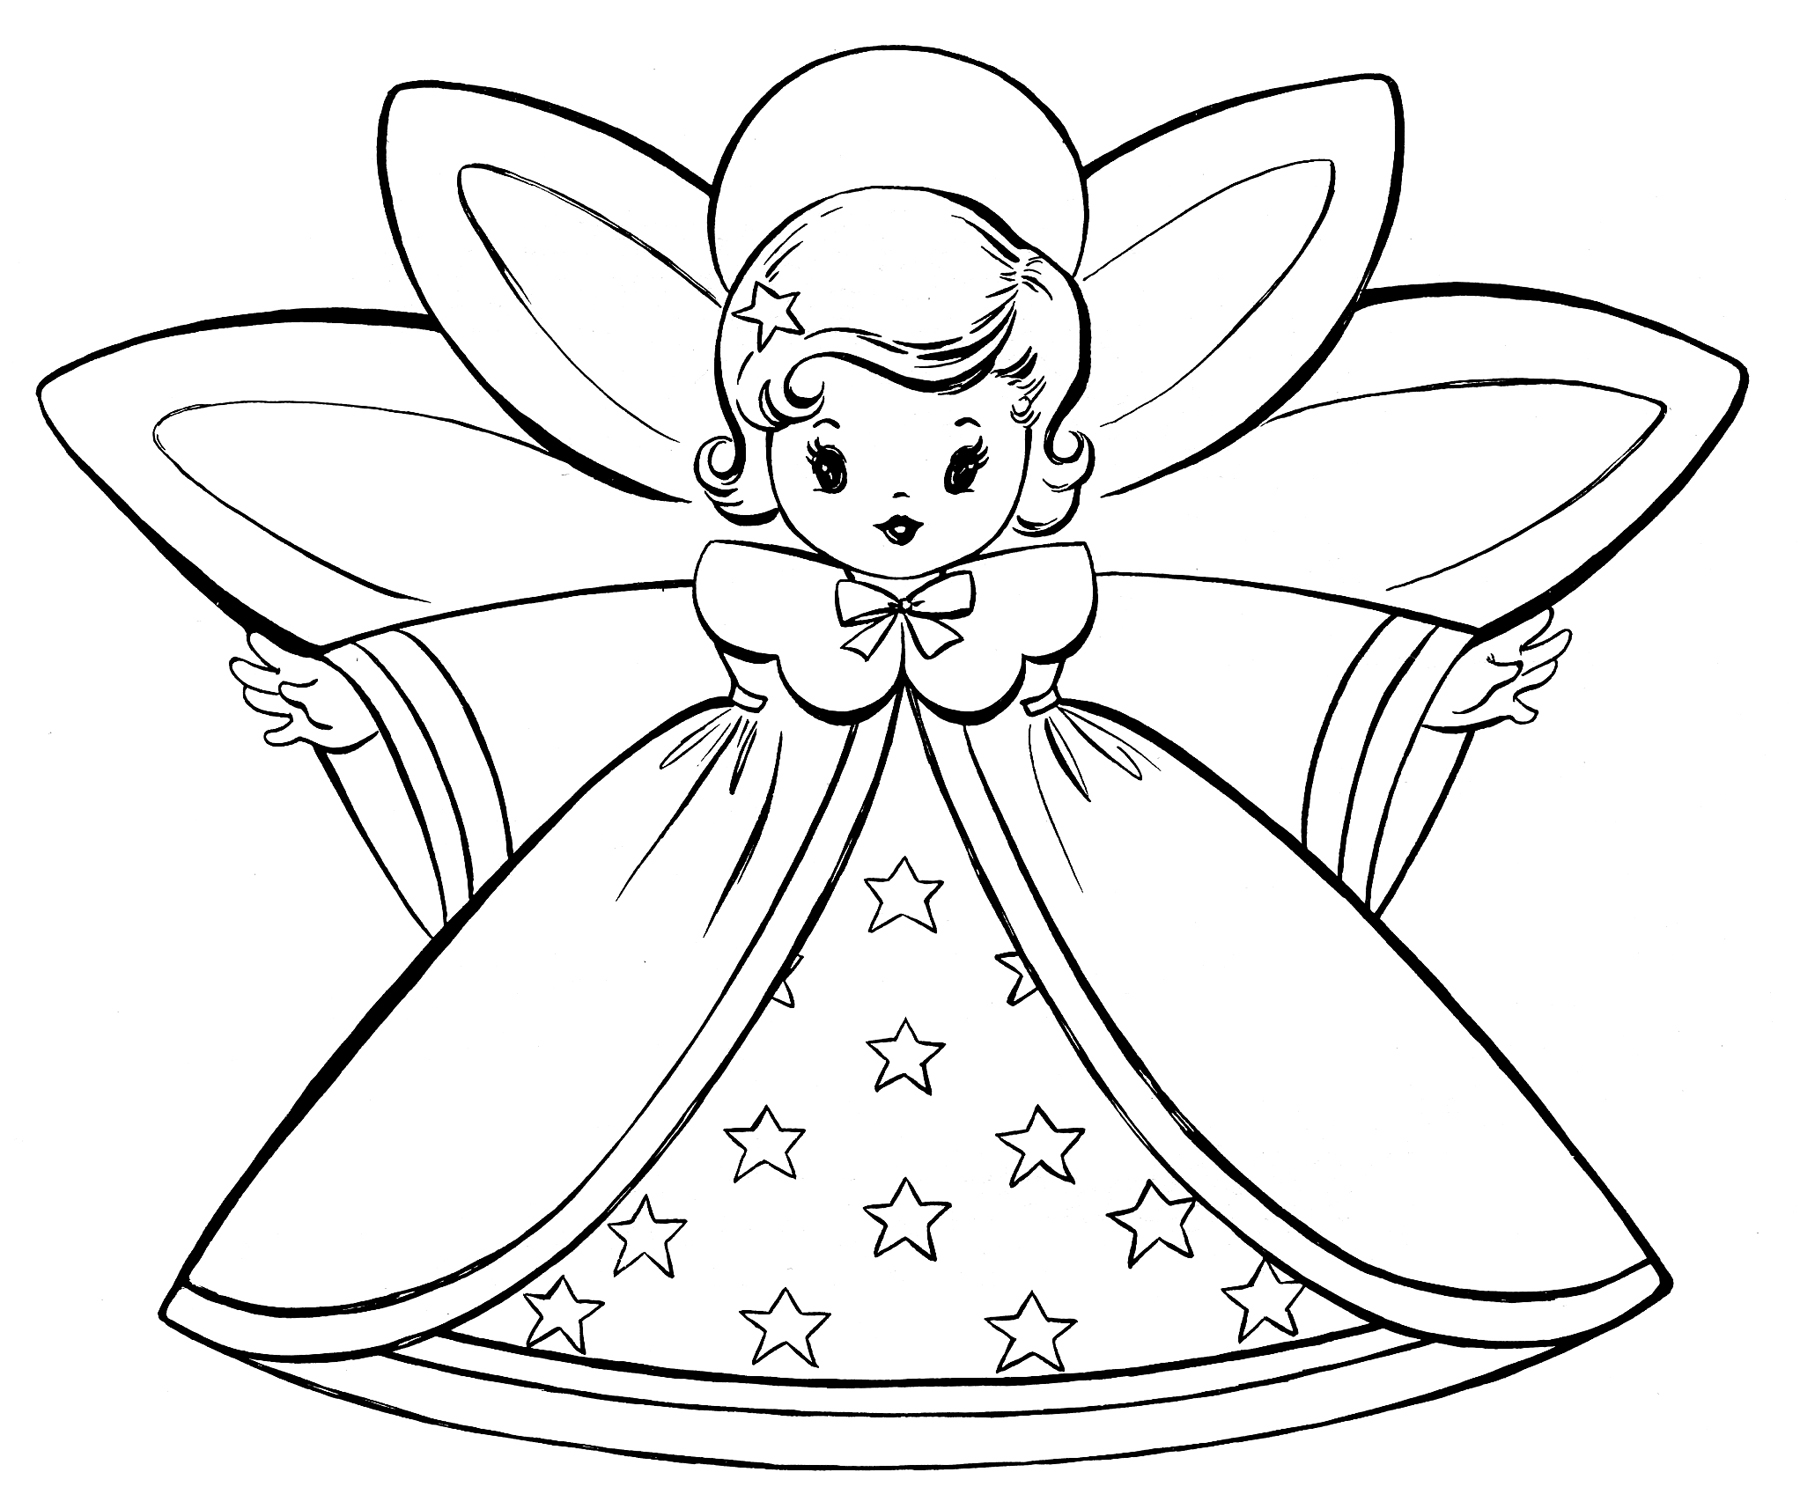 Christmas colouring in sheets printable - Free Christmas Coloring Pages